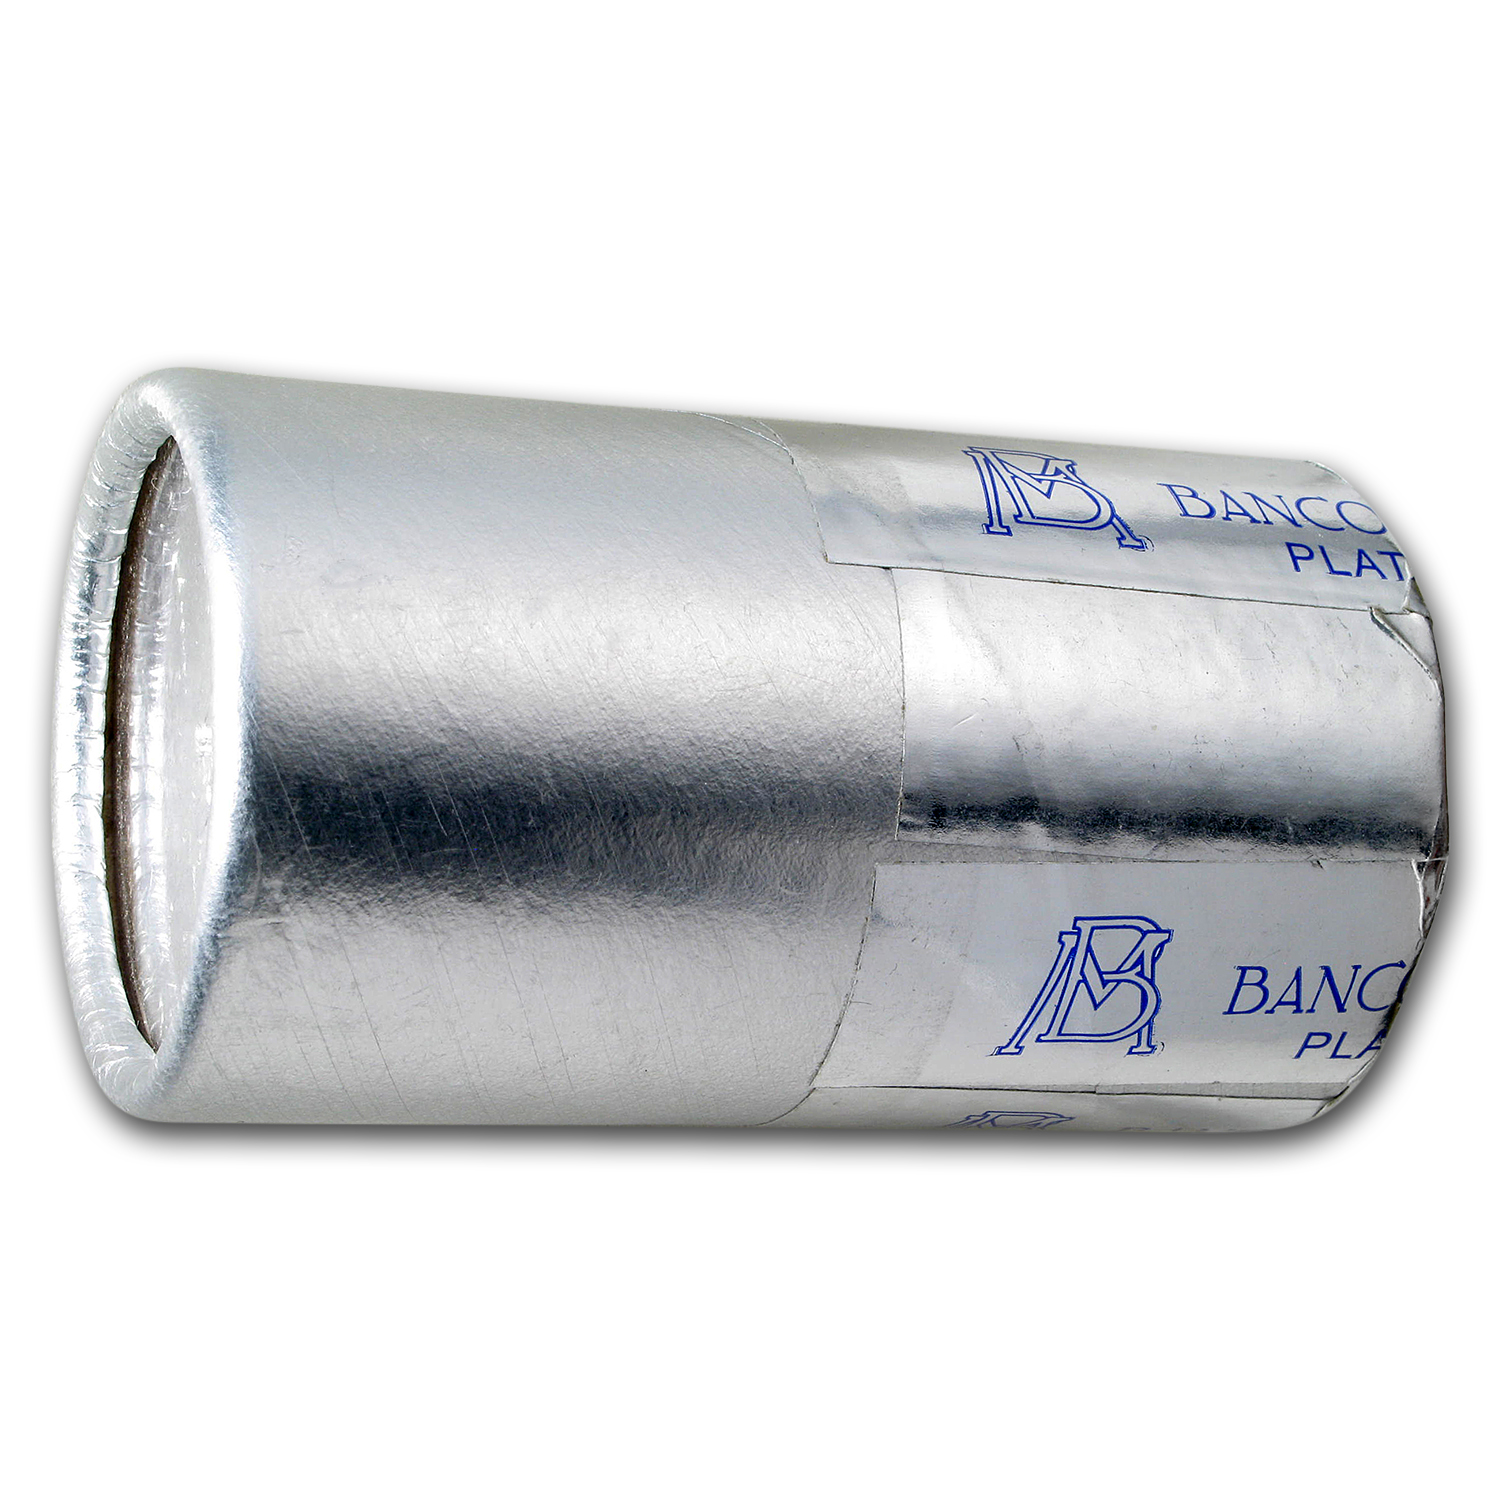 2010 Mexico 2 oz Silver Libertad BU (Bank Wrapped Roll)